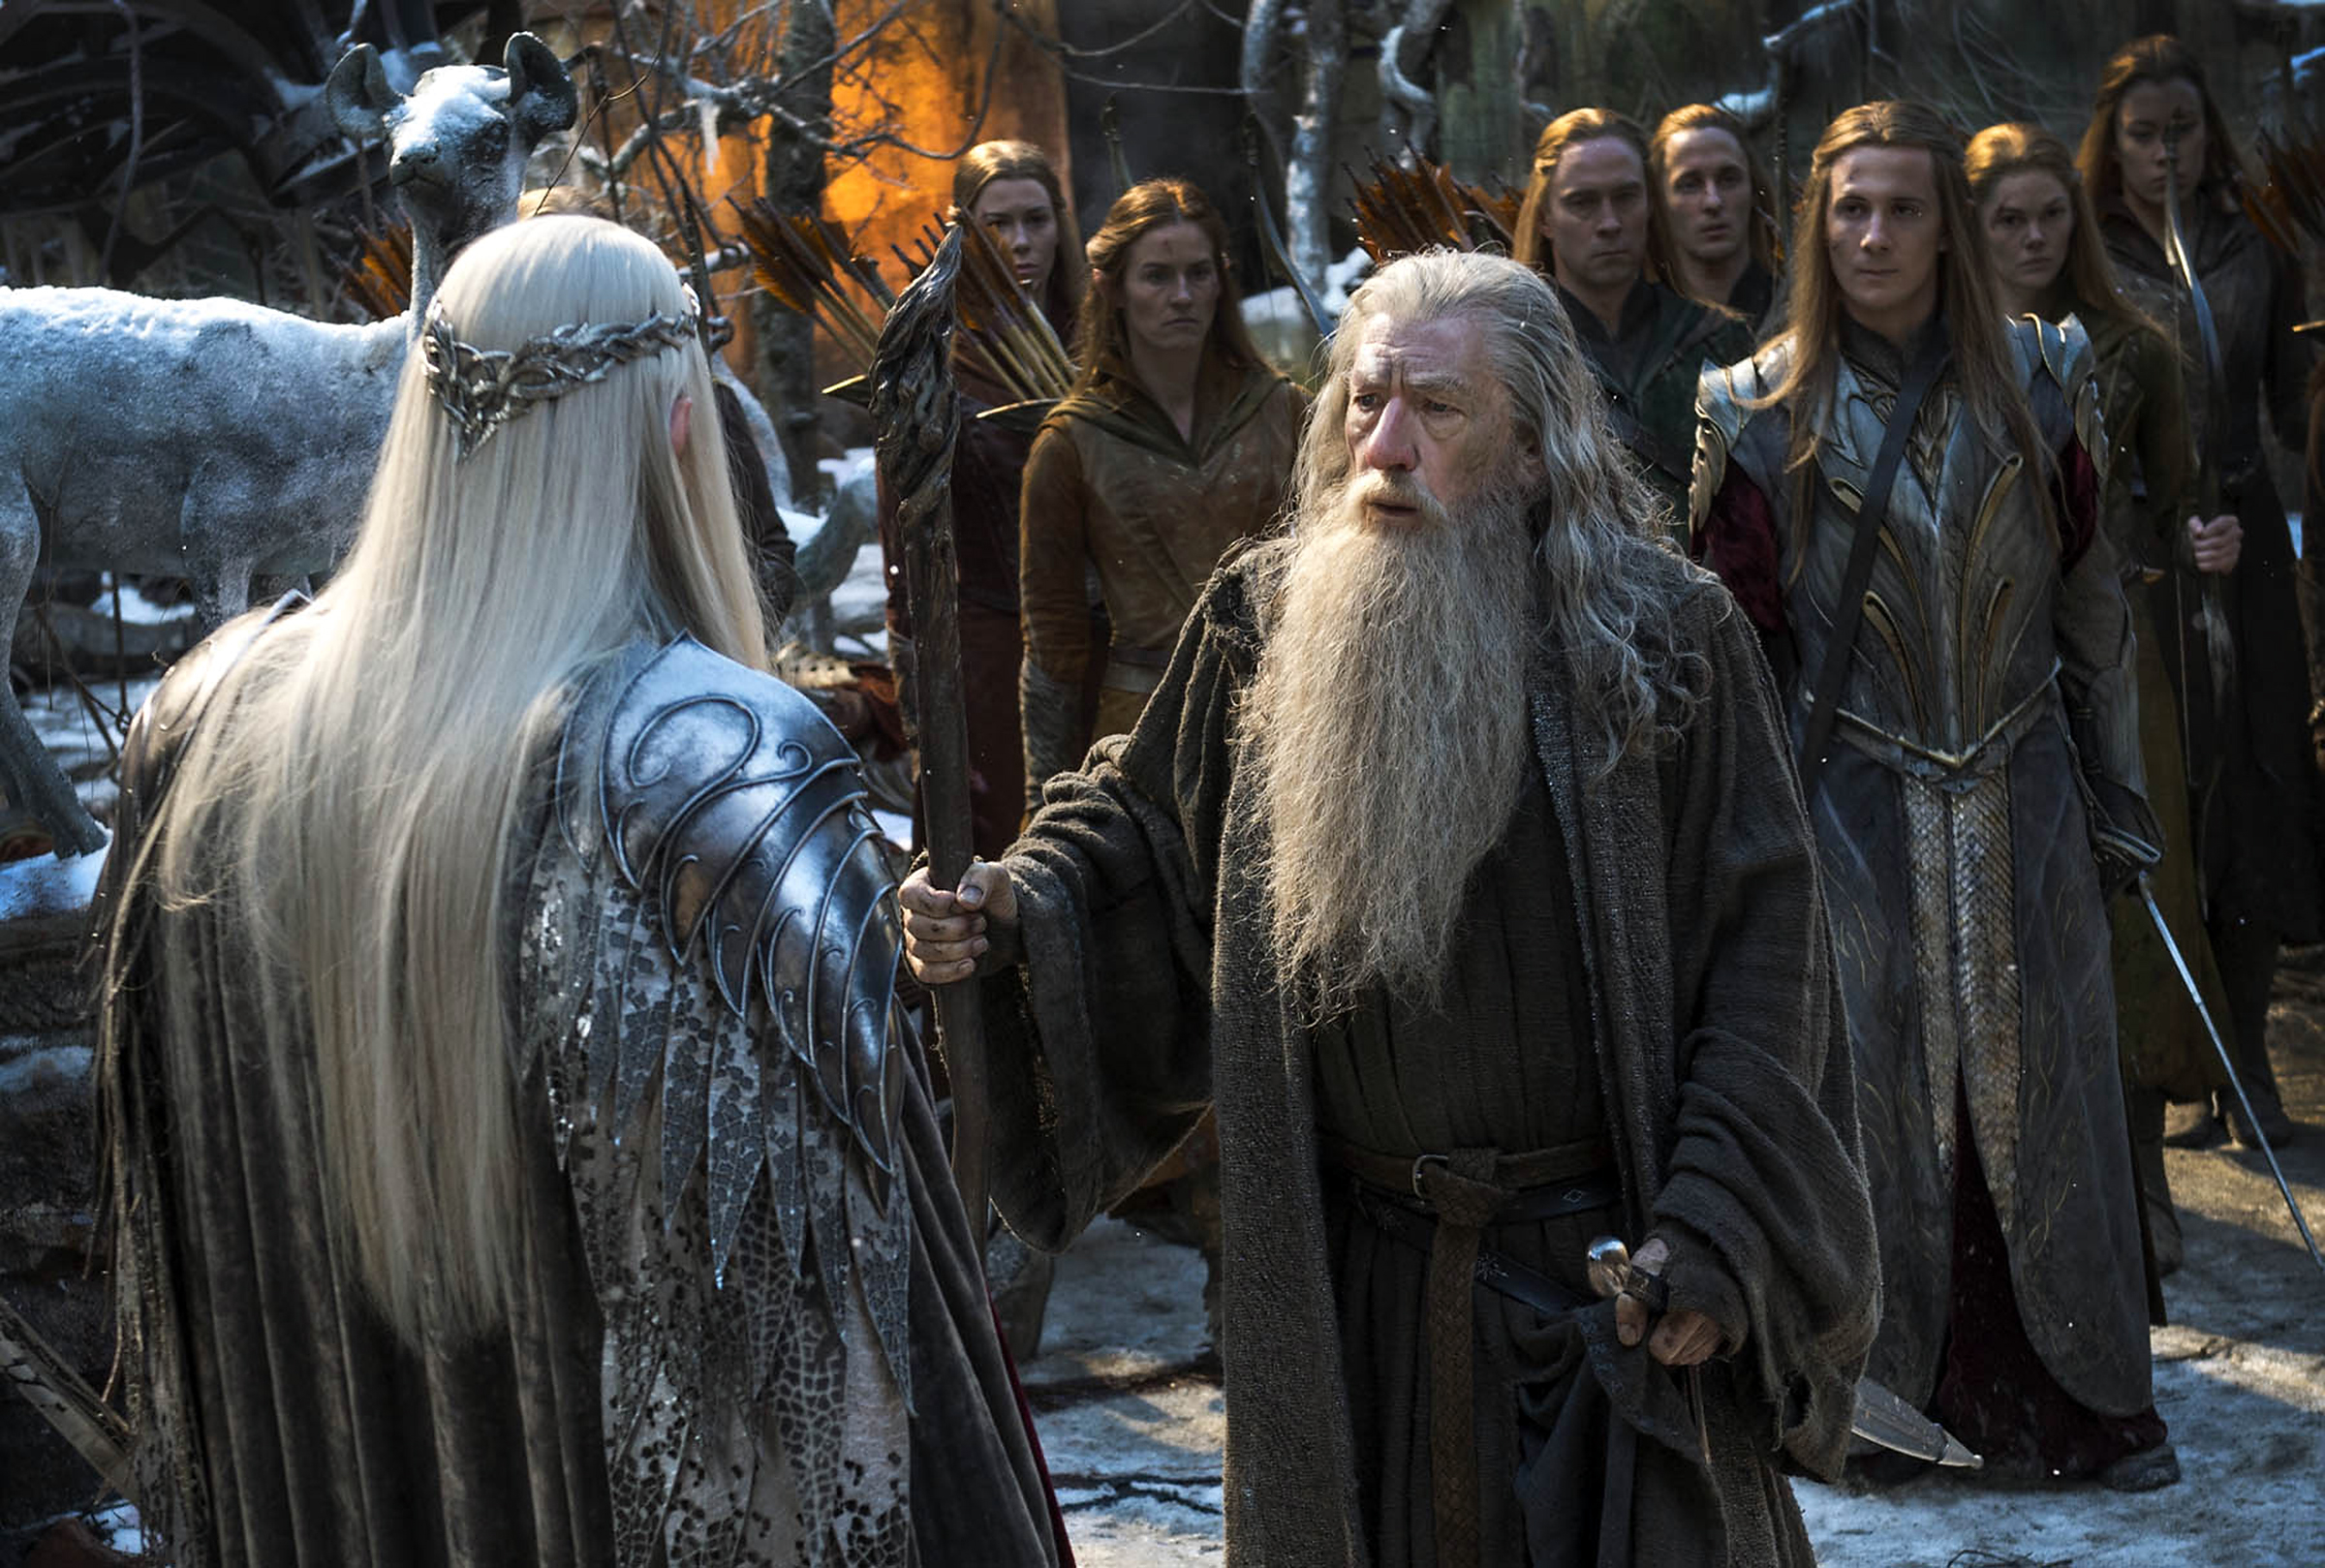 TheOneRing.net and Lee Pace on set to talk 'The Hobbit ...